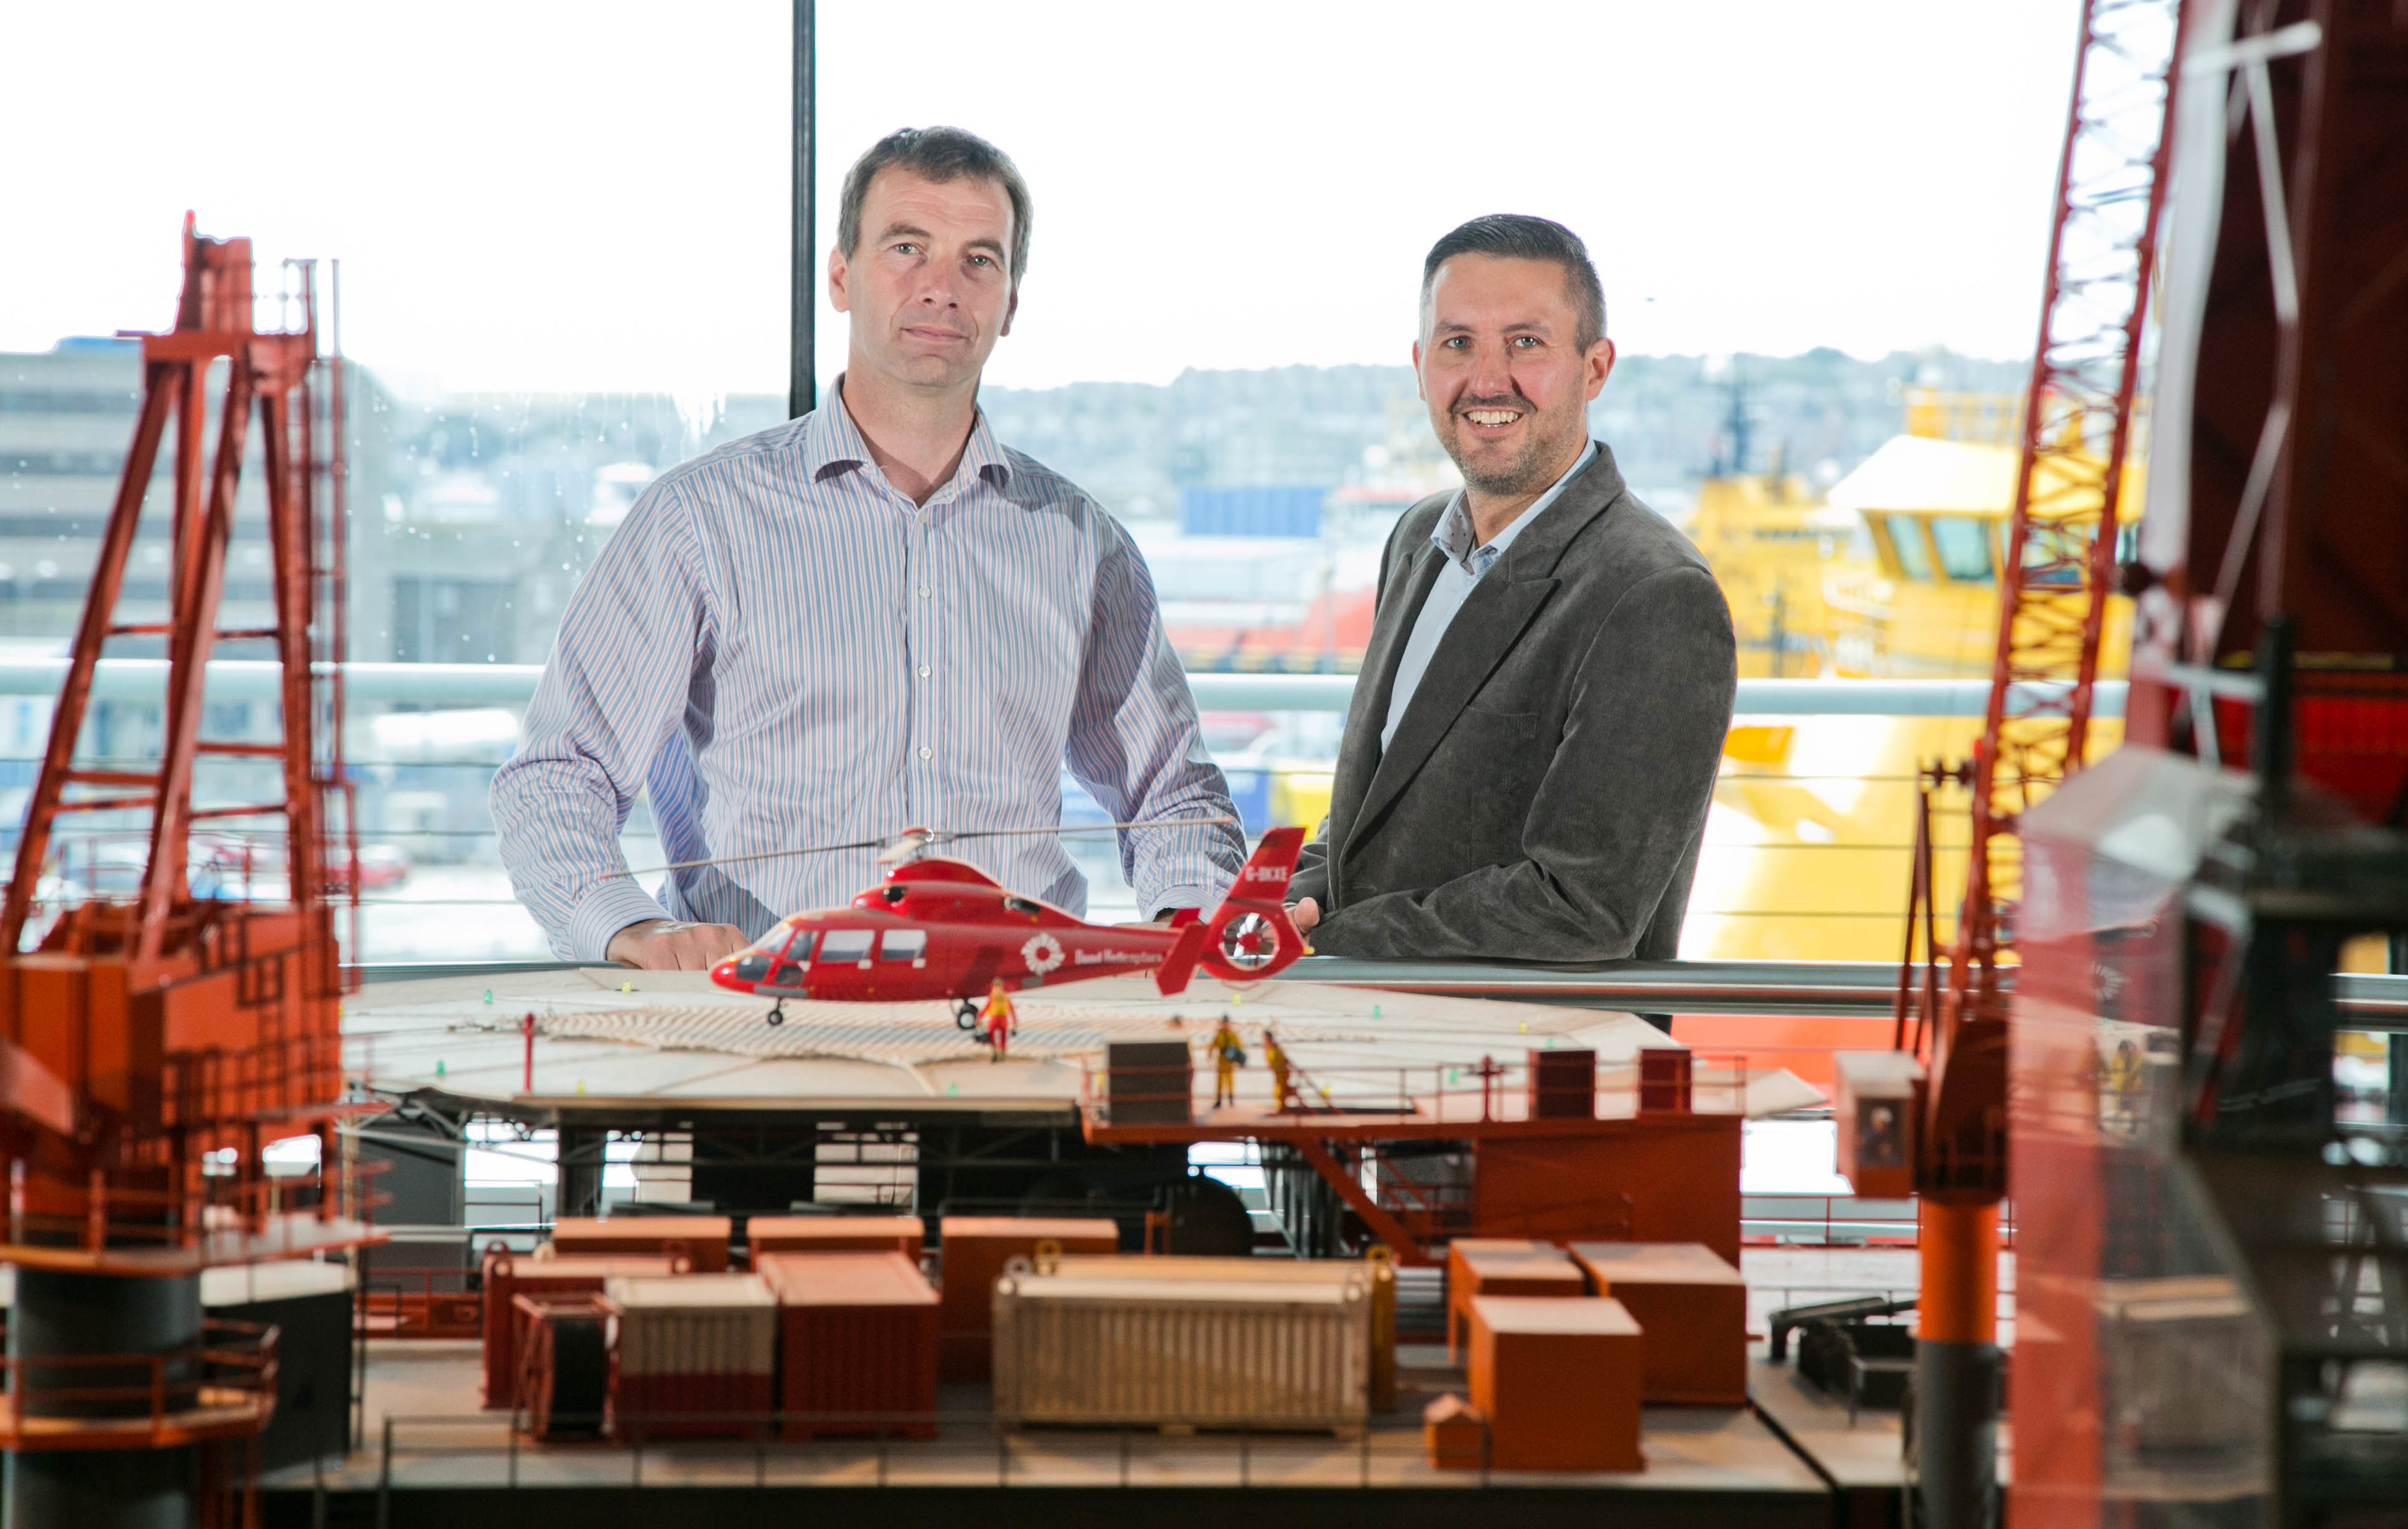 Well-Sense's leadership team: Dan Purkis, technology director (left) and Paul Higginson, customer solutions and support director